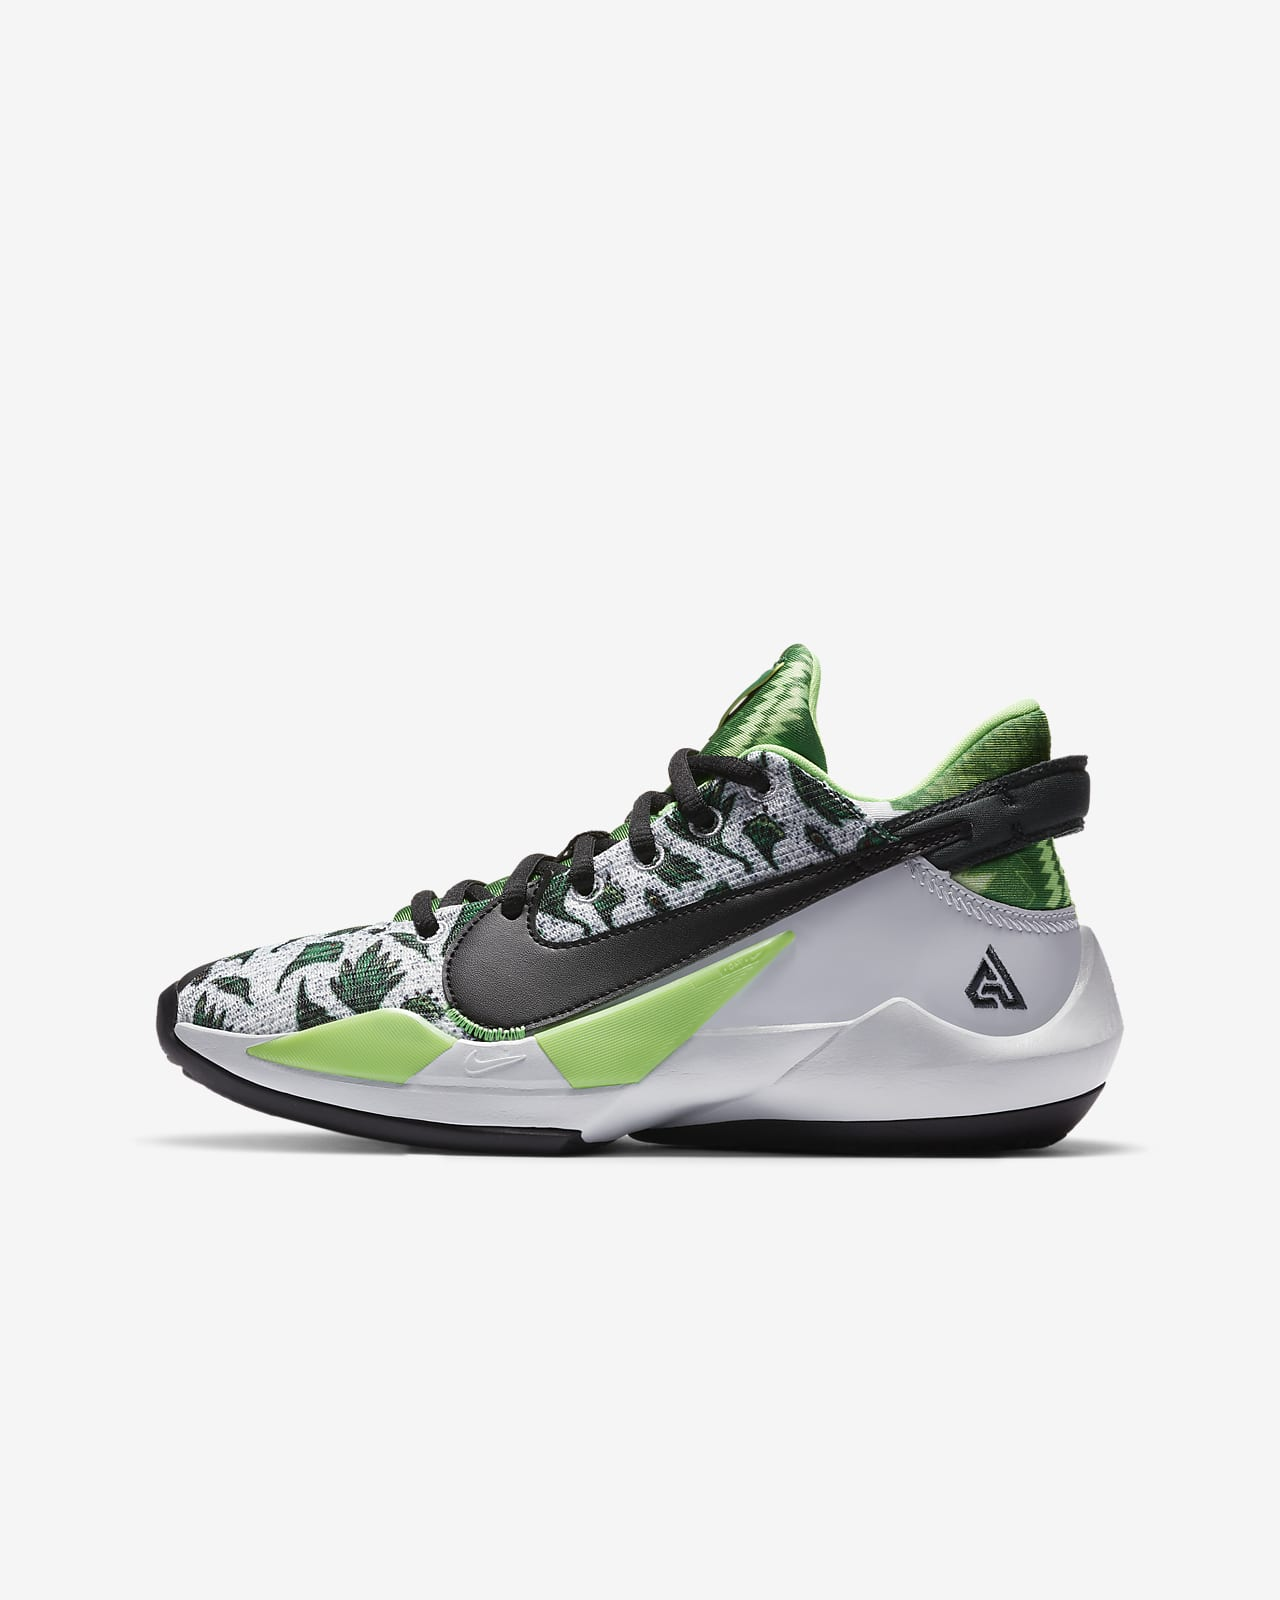 Freak 2 Big Kids' Basketball Shoe